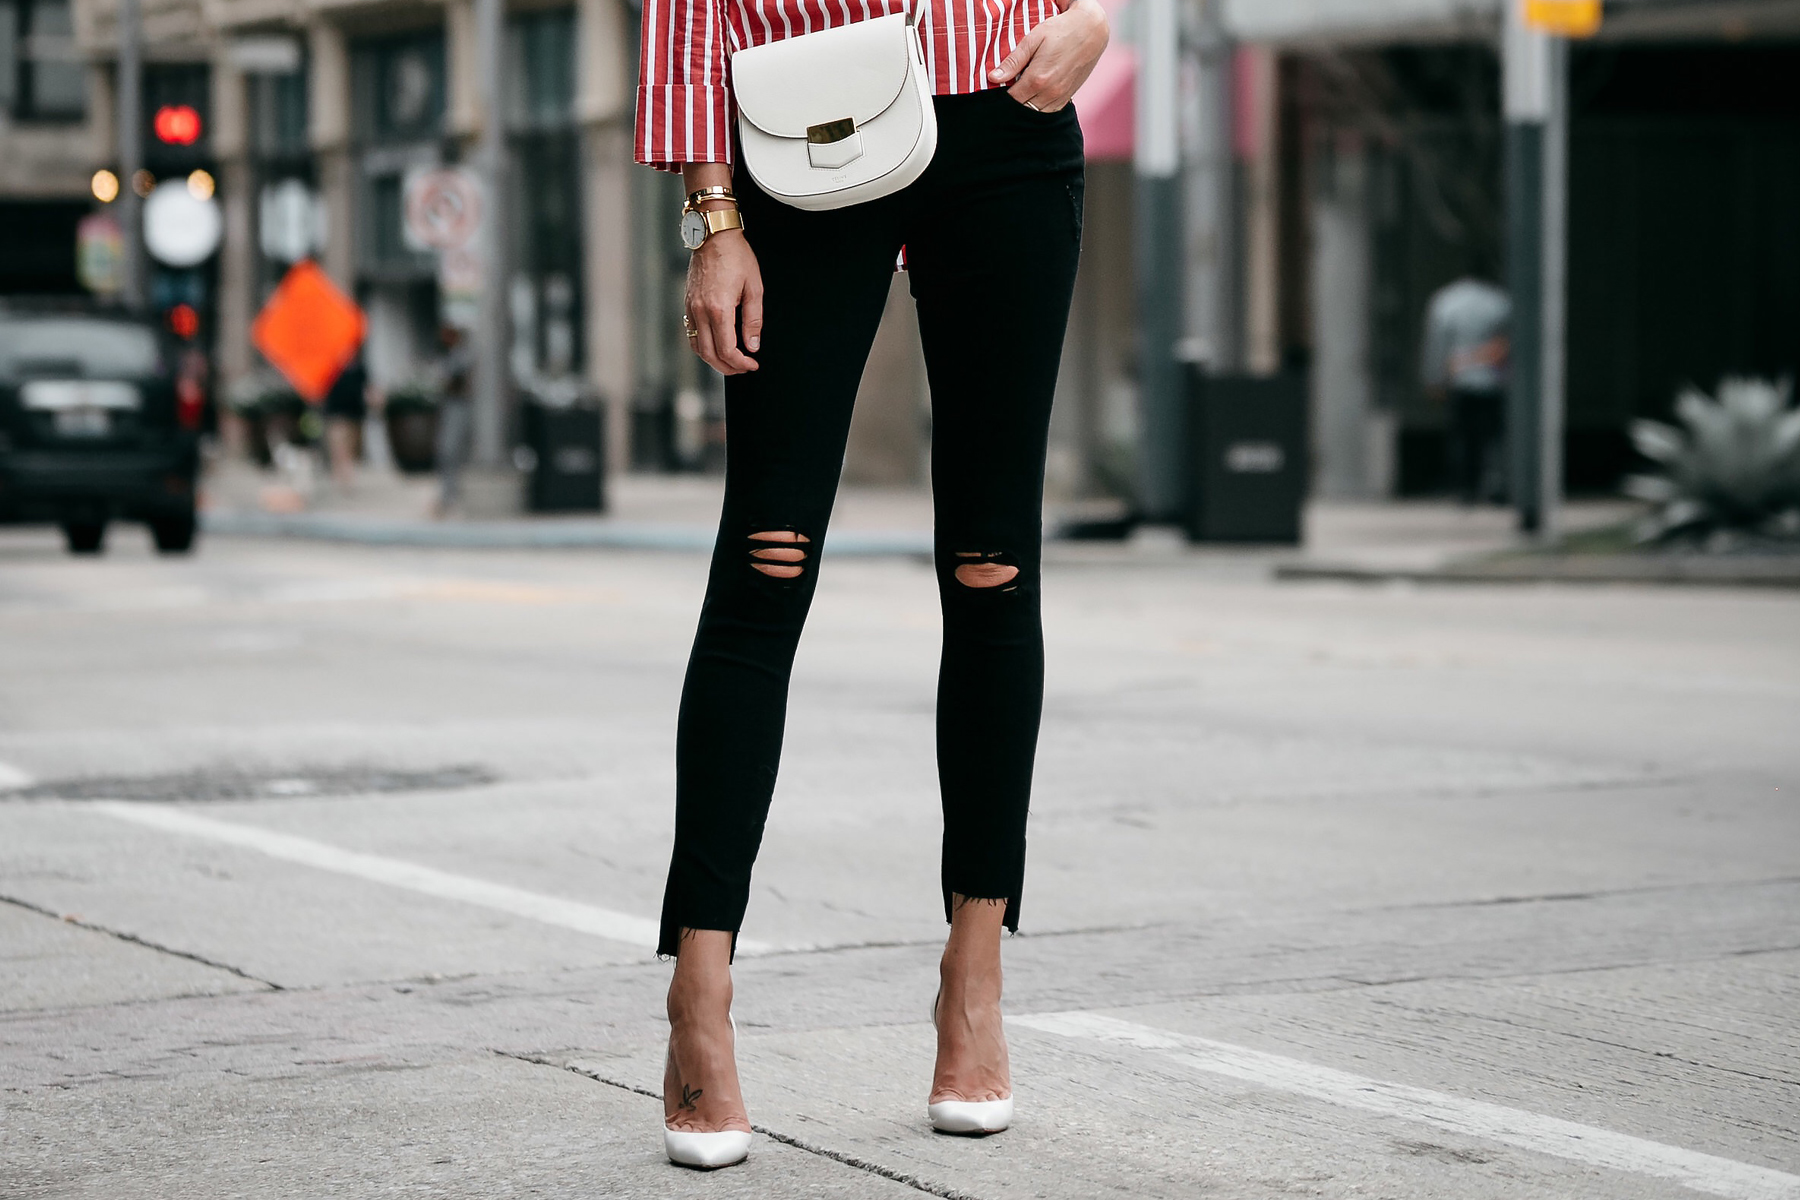 Celine White Trotteur Handbag Frame Black Ripped Skinny Jeans Christian Louboutin White Pumps Fashion Jackson Dallas Blogger Fashion Blogger Street Style